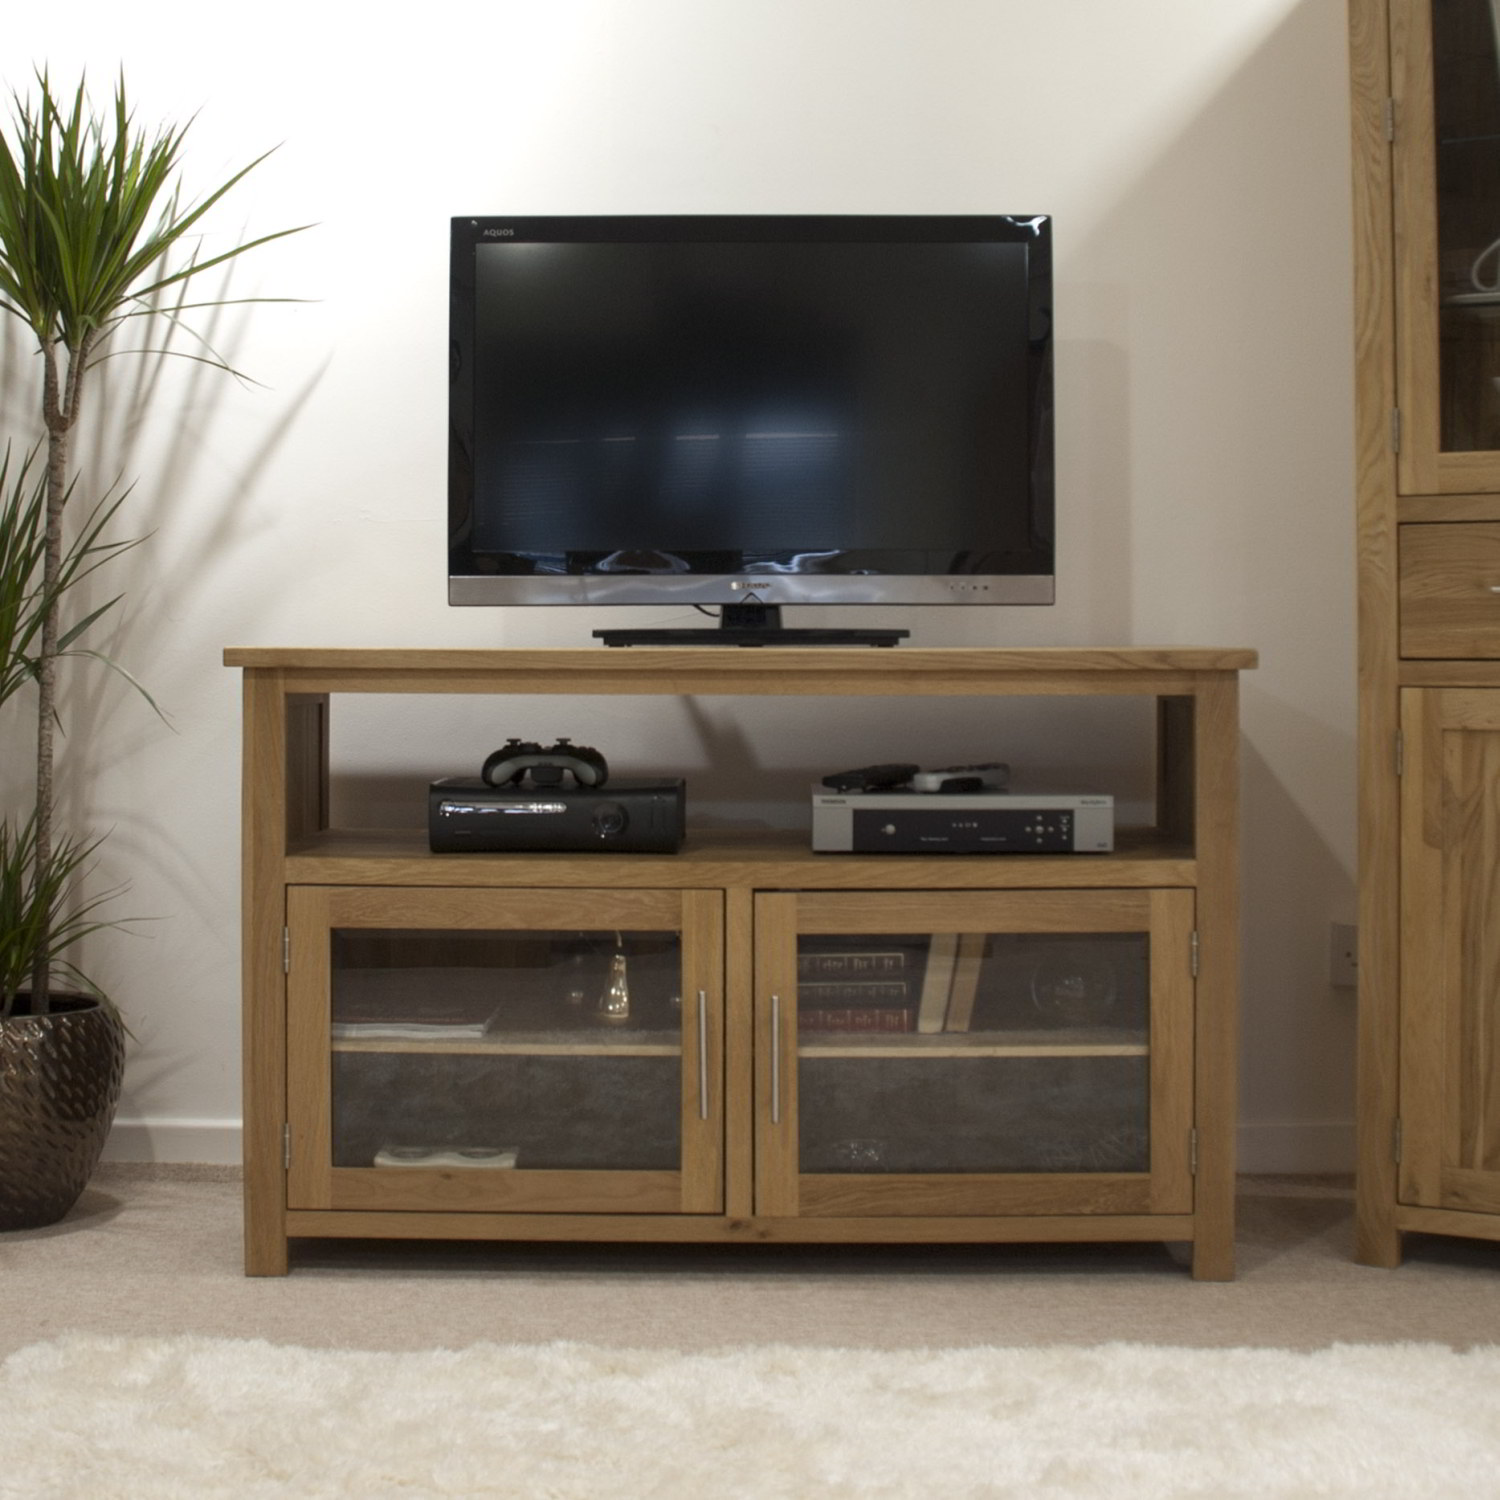 eton solid oak living room furniture tv cabinet stand. Black Bedroom Furniture Sets. Home Design Ideas